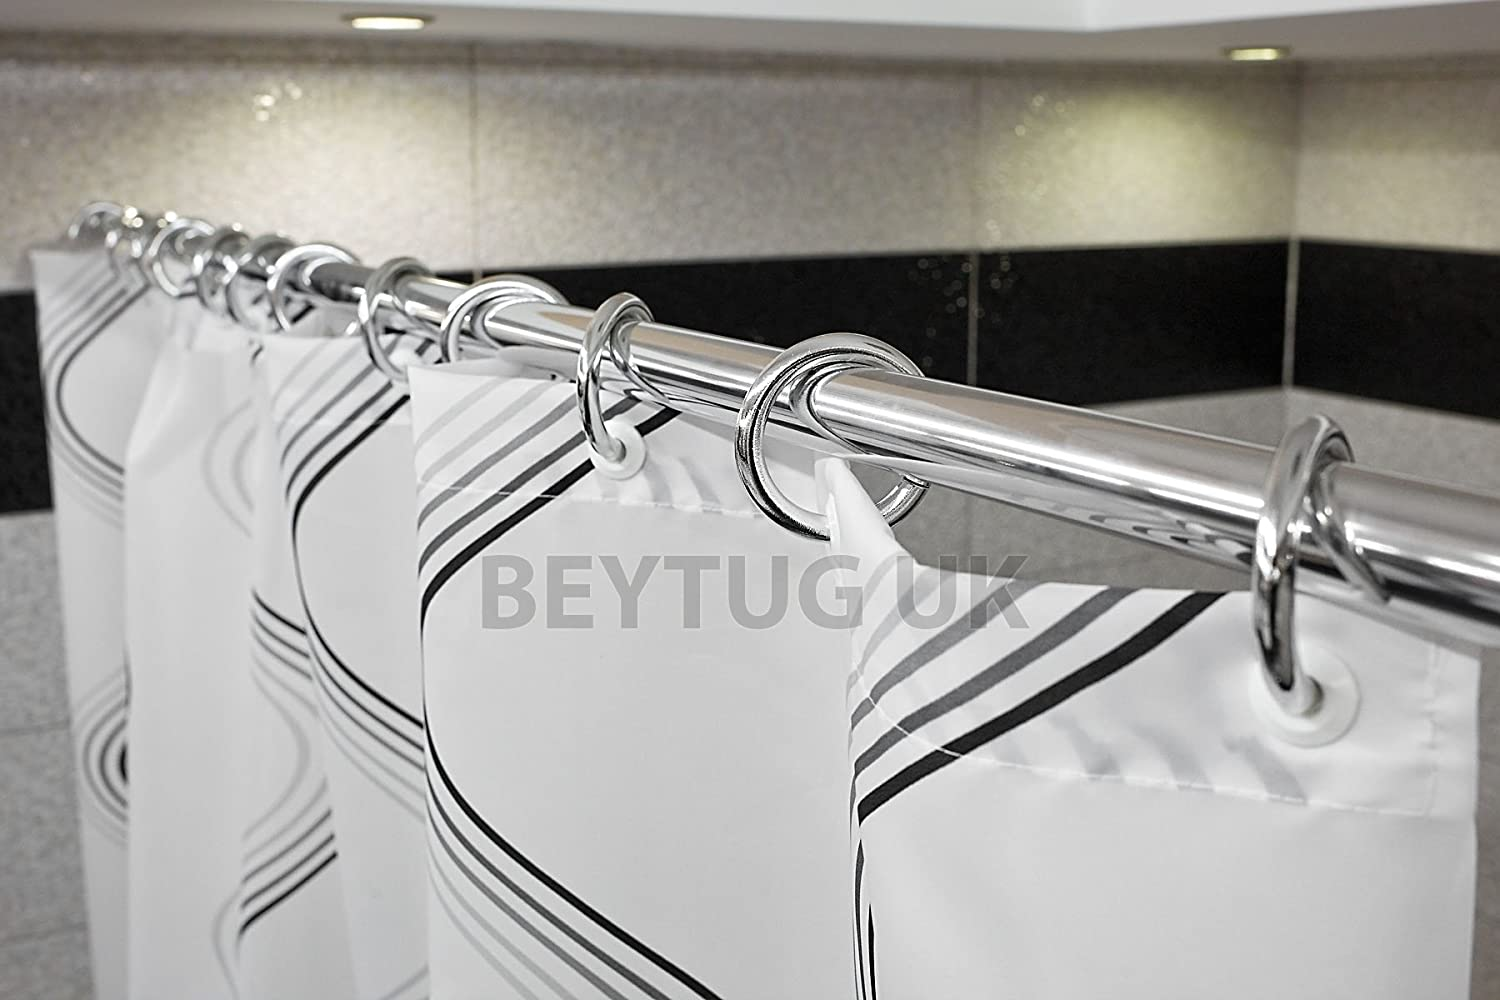 Spring loaded extendable net voile tension hanging shower curtain rail - New Telescopic Extendable Shower Curtain Rod Rail 70cm 110cm Spring Loaded Chrome Amazon Co Uk Kitchen Home